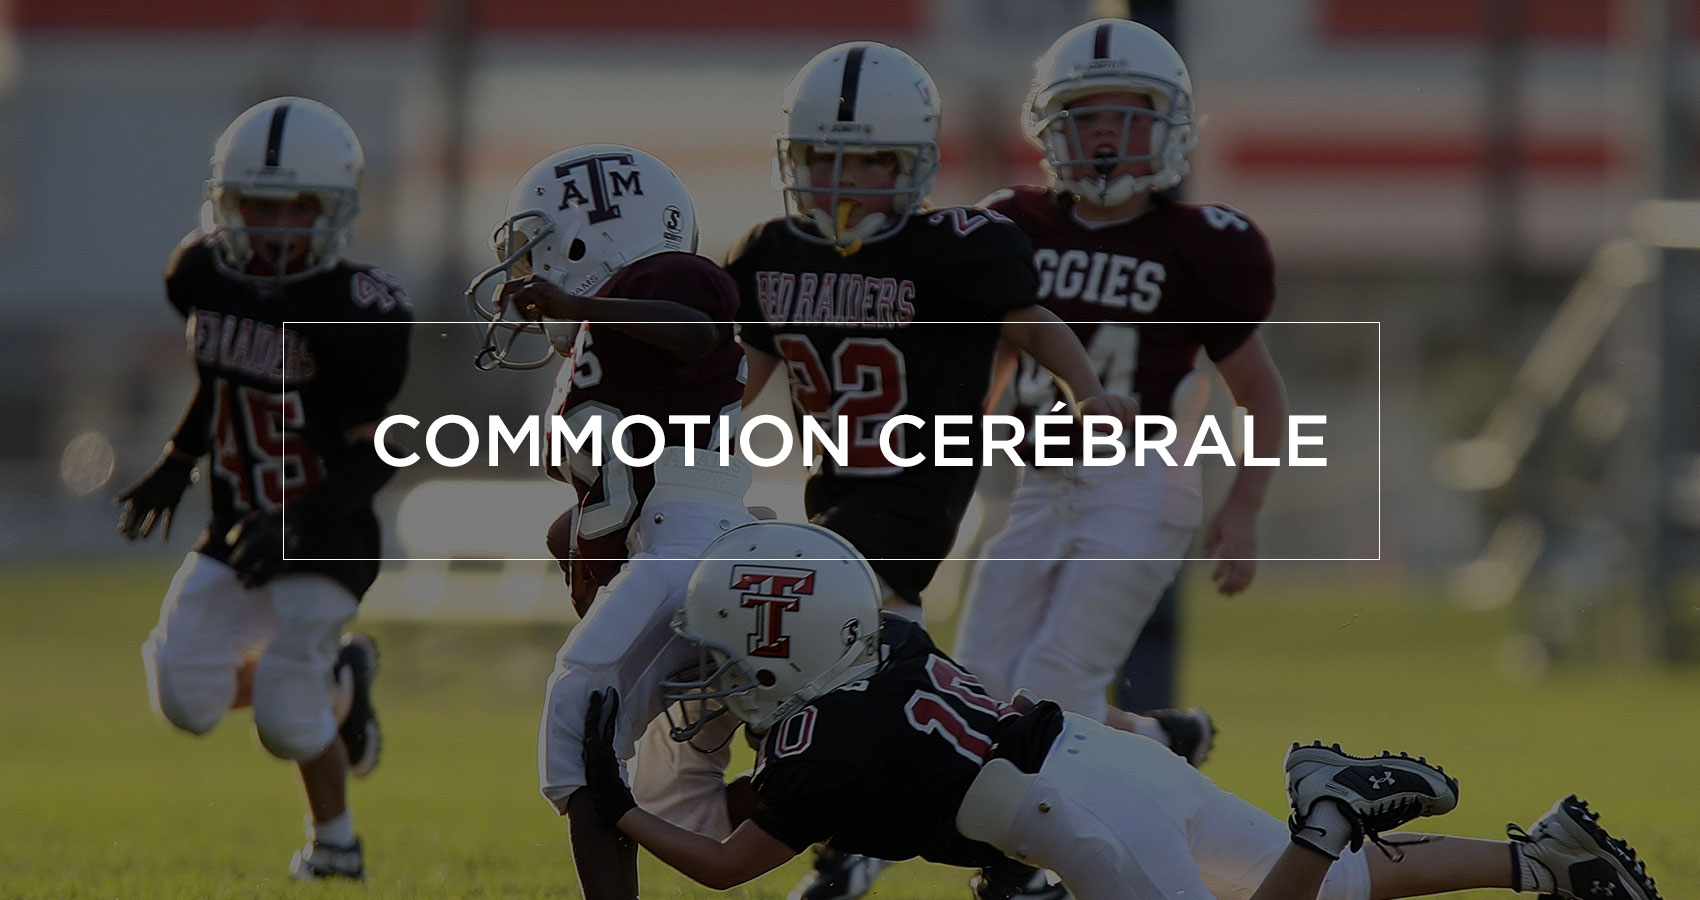 commotion-cerebrale-physiotherapie-daigneault